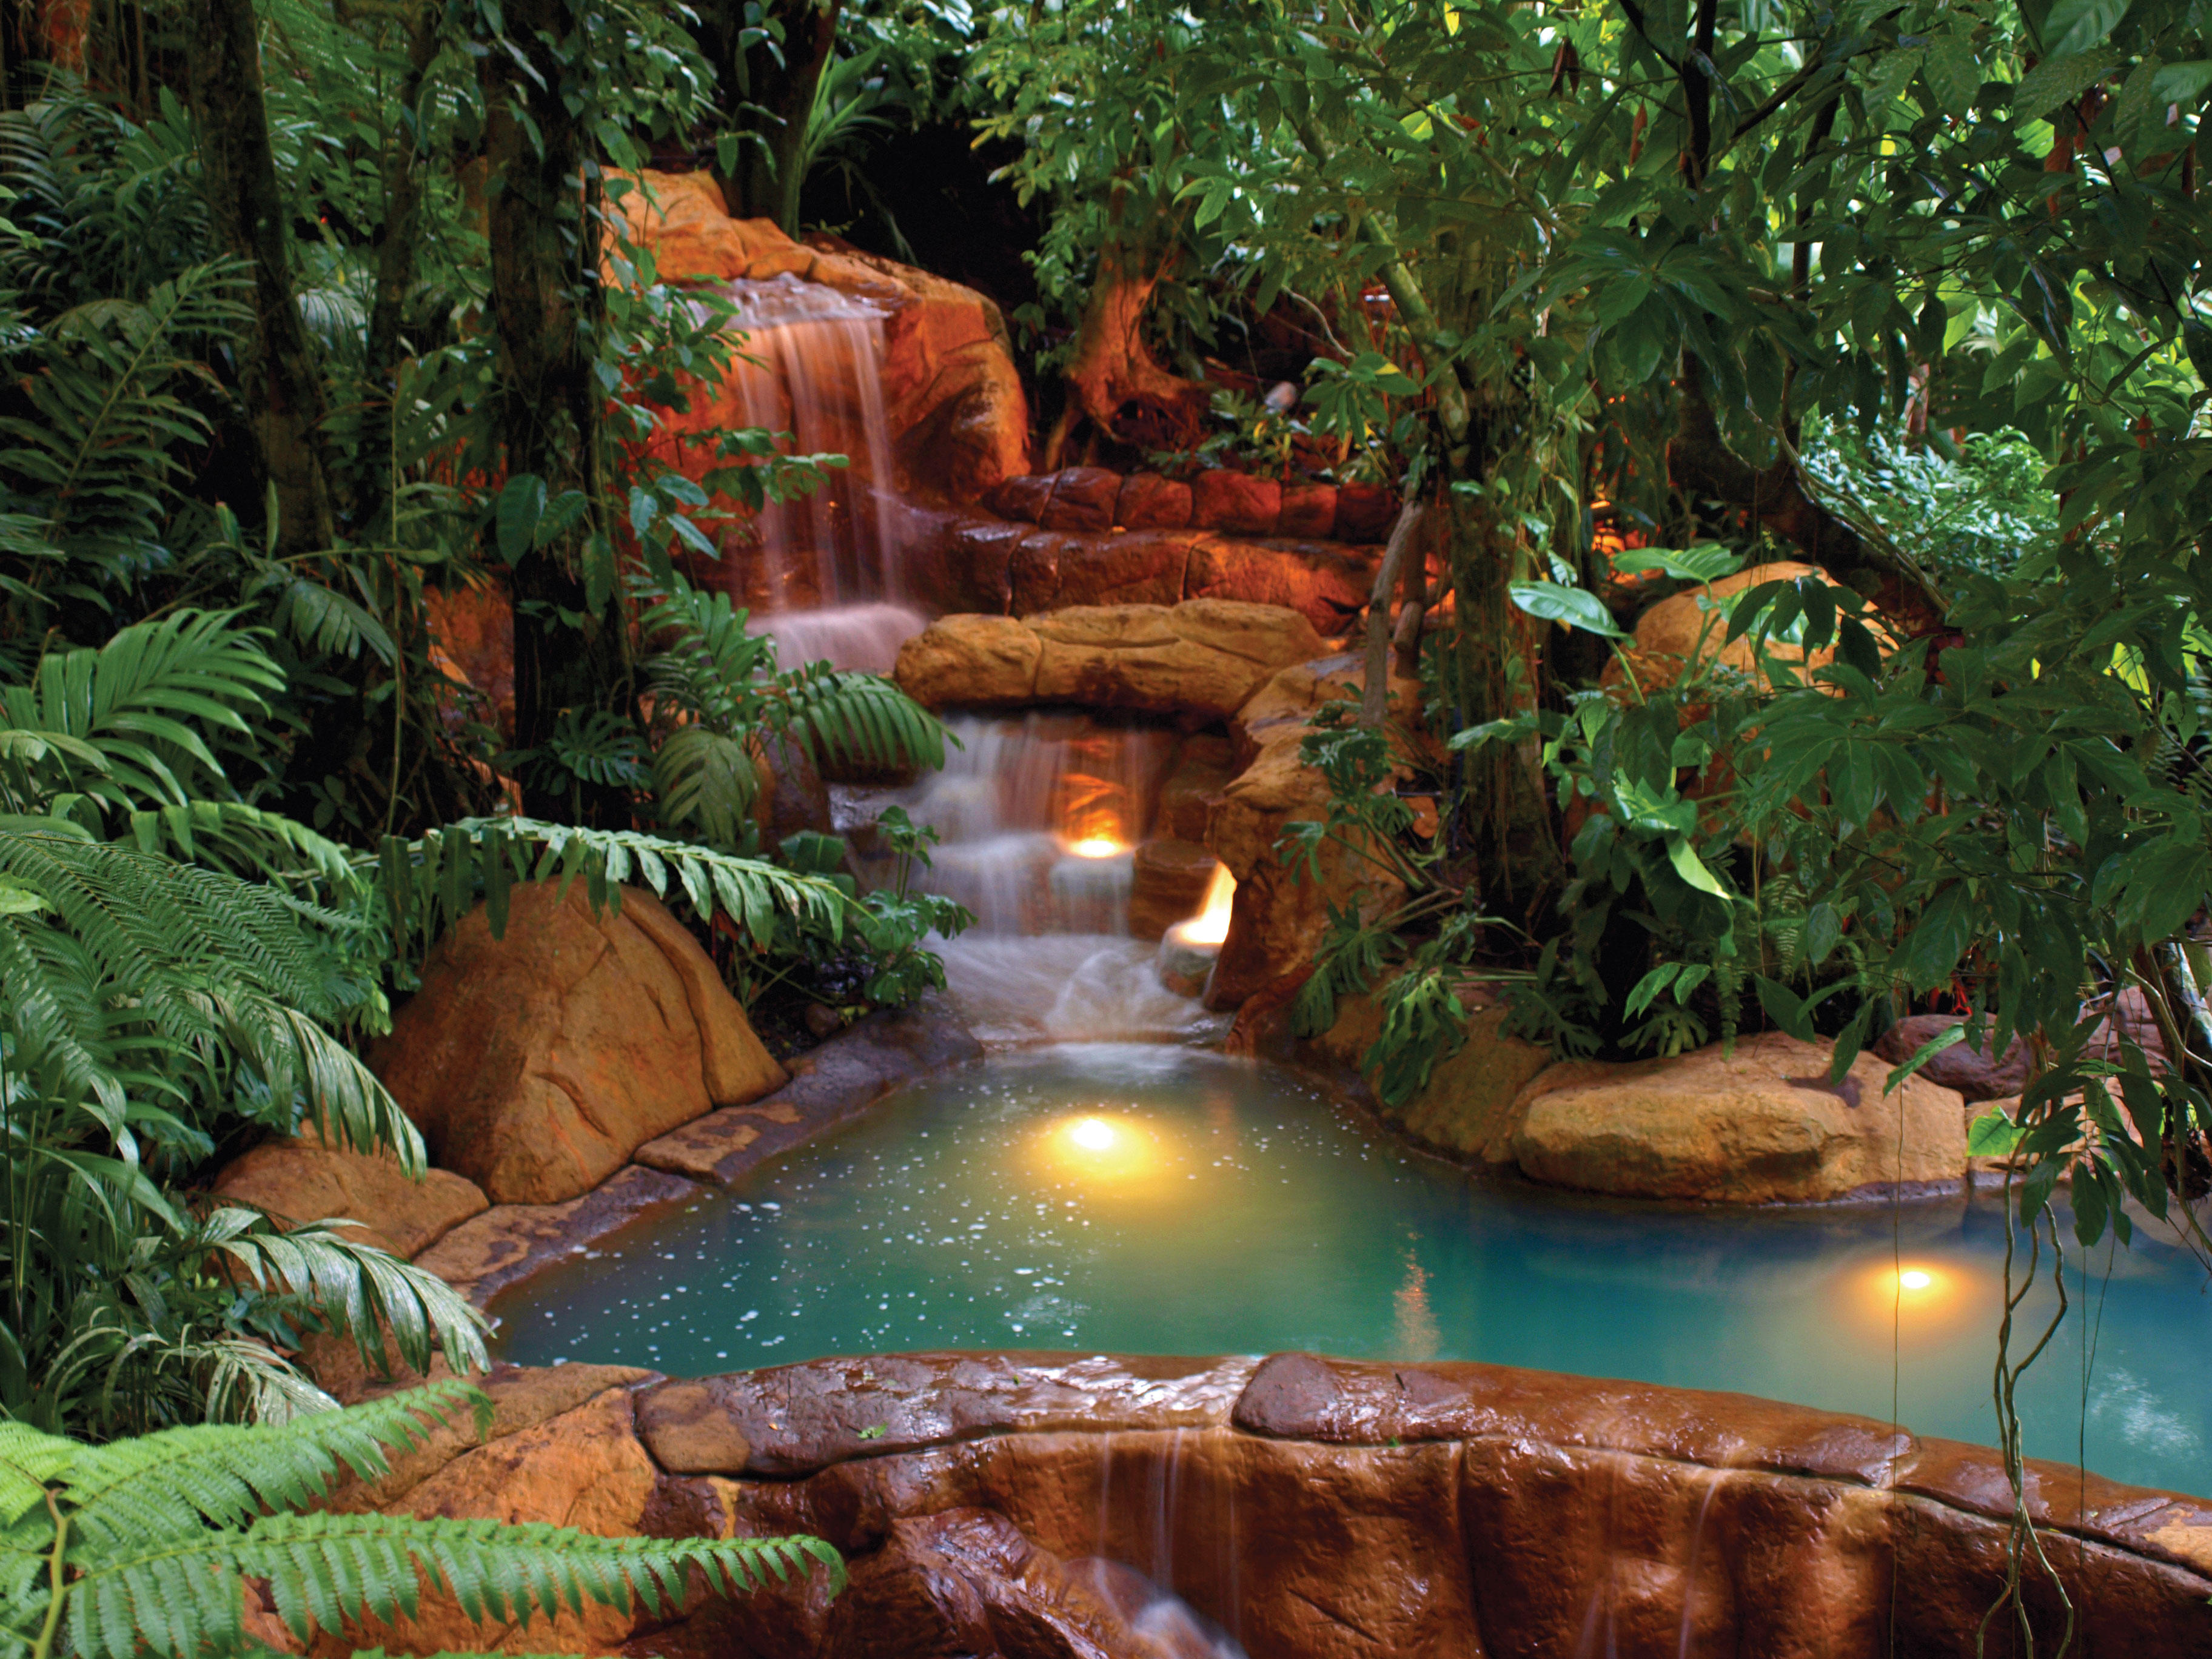 hot springs with a small waterfall